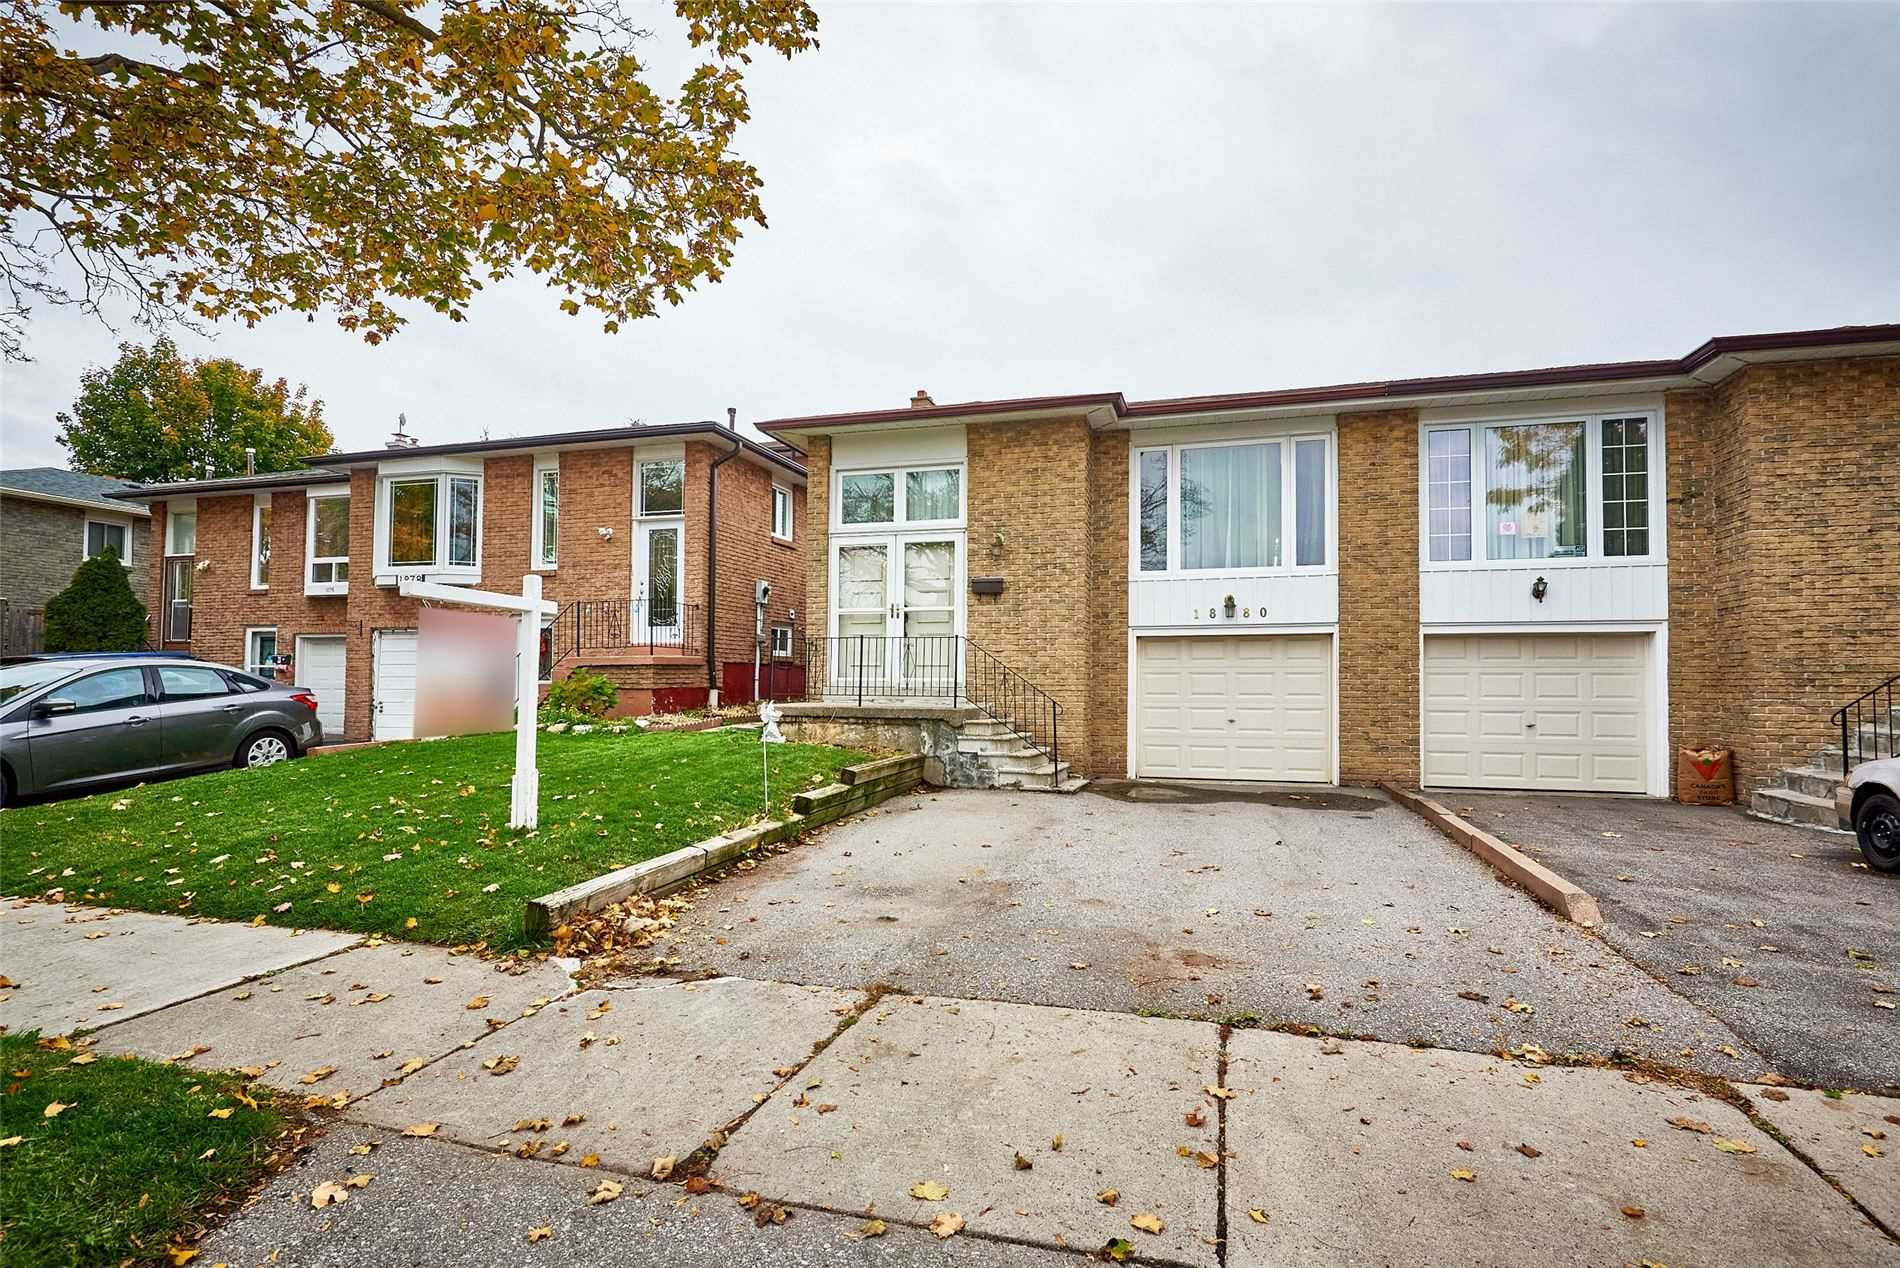 1880 Rosefield Rd, Pickering, Ontario L1V3H6, 3 Bedrooms Bedrooms, 6 Rooms Rooms,2 BathroomsBathrooms,Semi-Detached,For Sale,Rosefield,E4974364